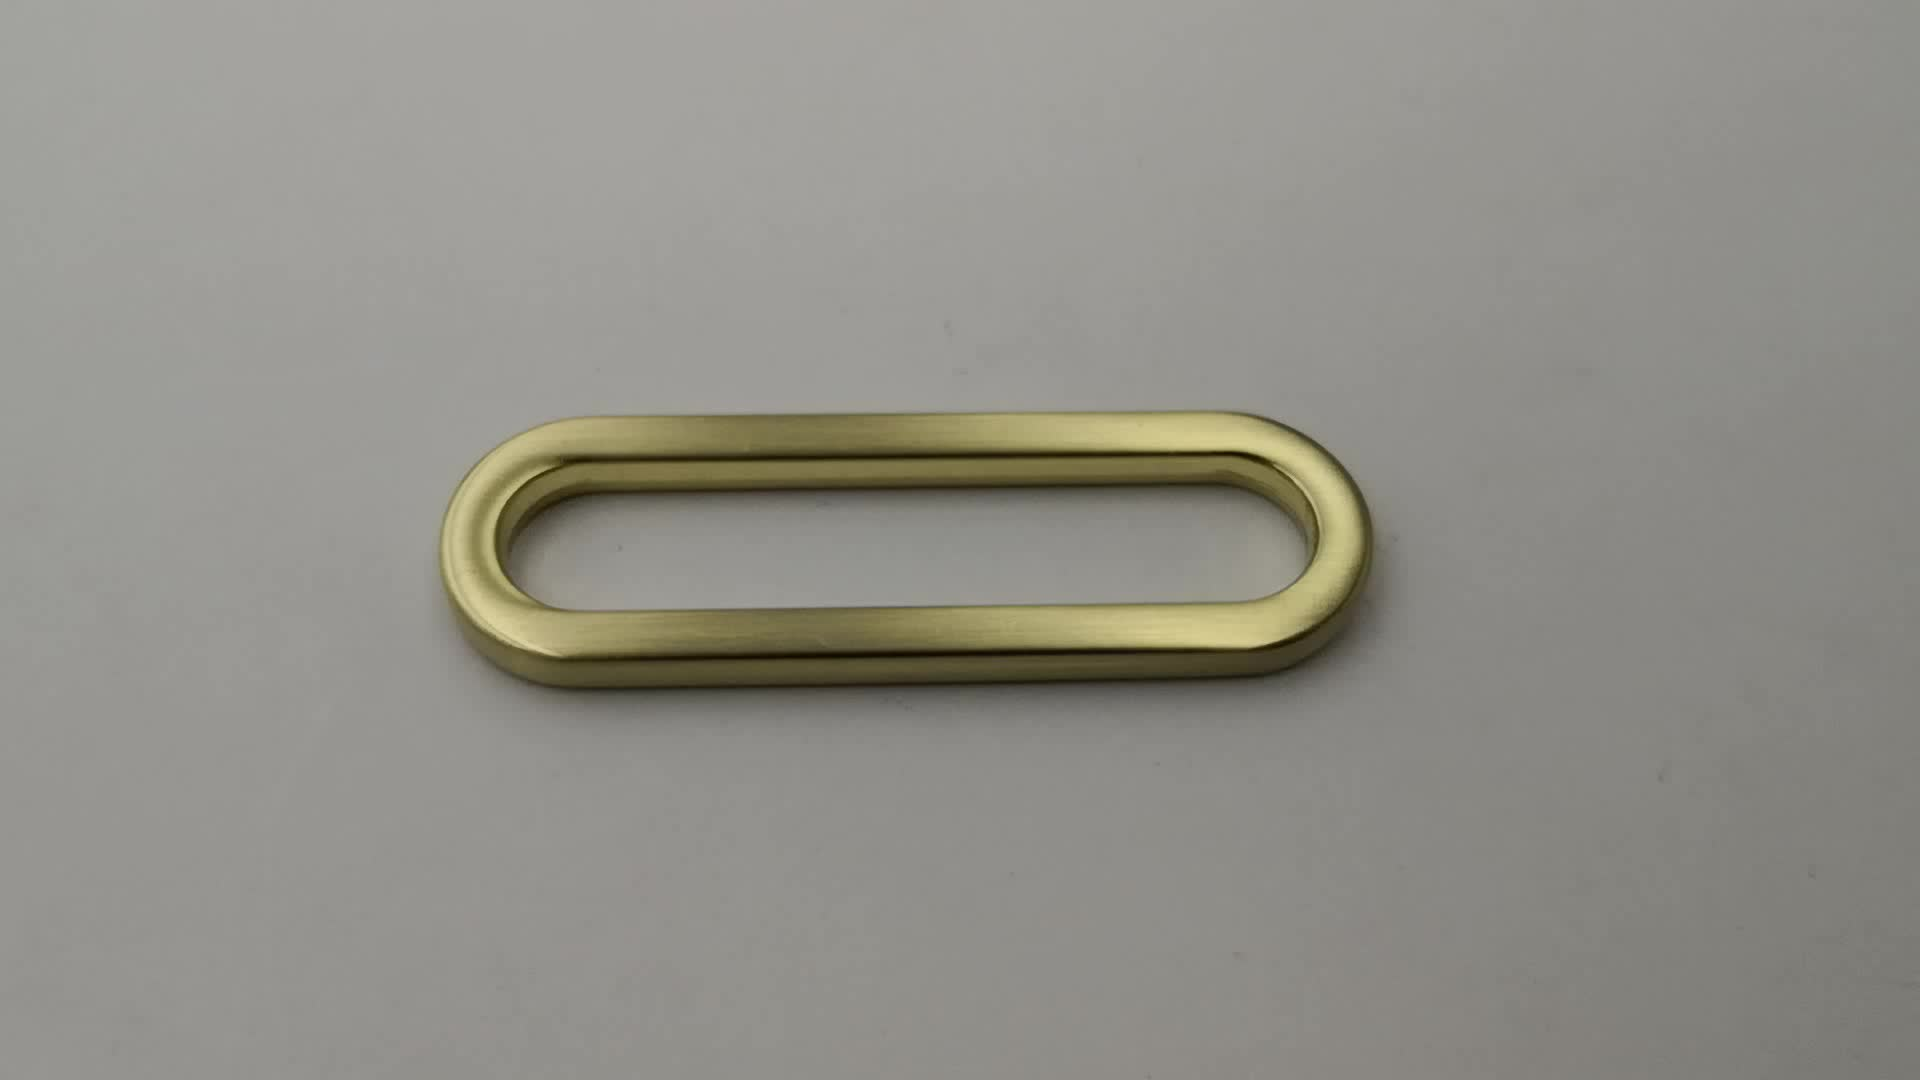 50mm big size handbag accessories metal oval ring for bag fittings